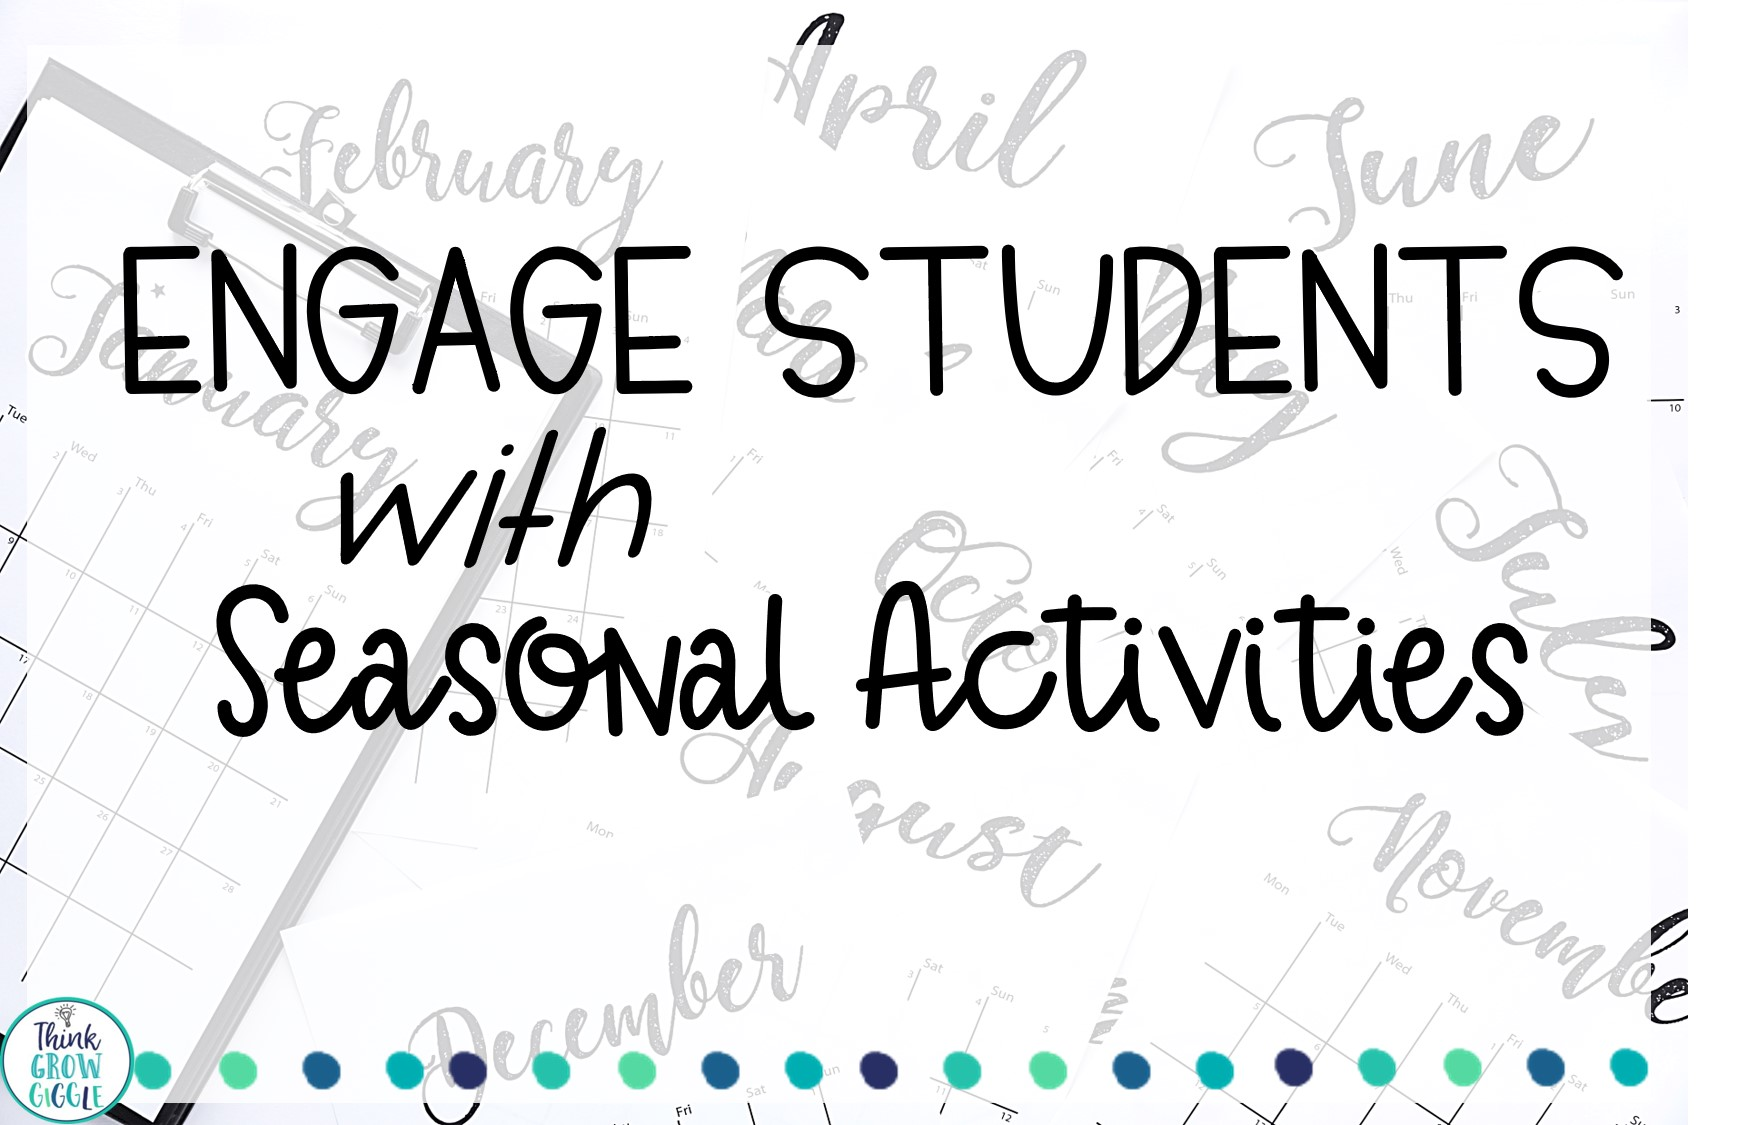 3 Simple Ways to Engage Students By Teaching With Seasonal and Holiday Activities